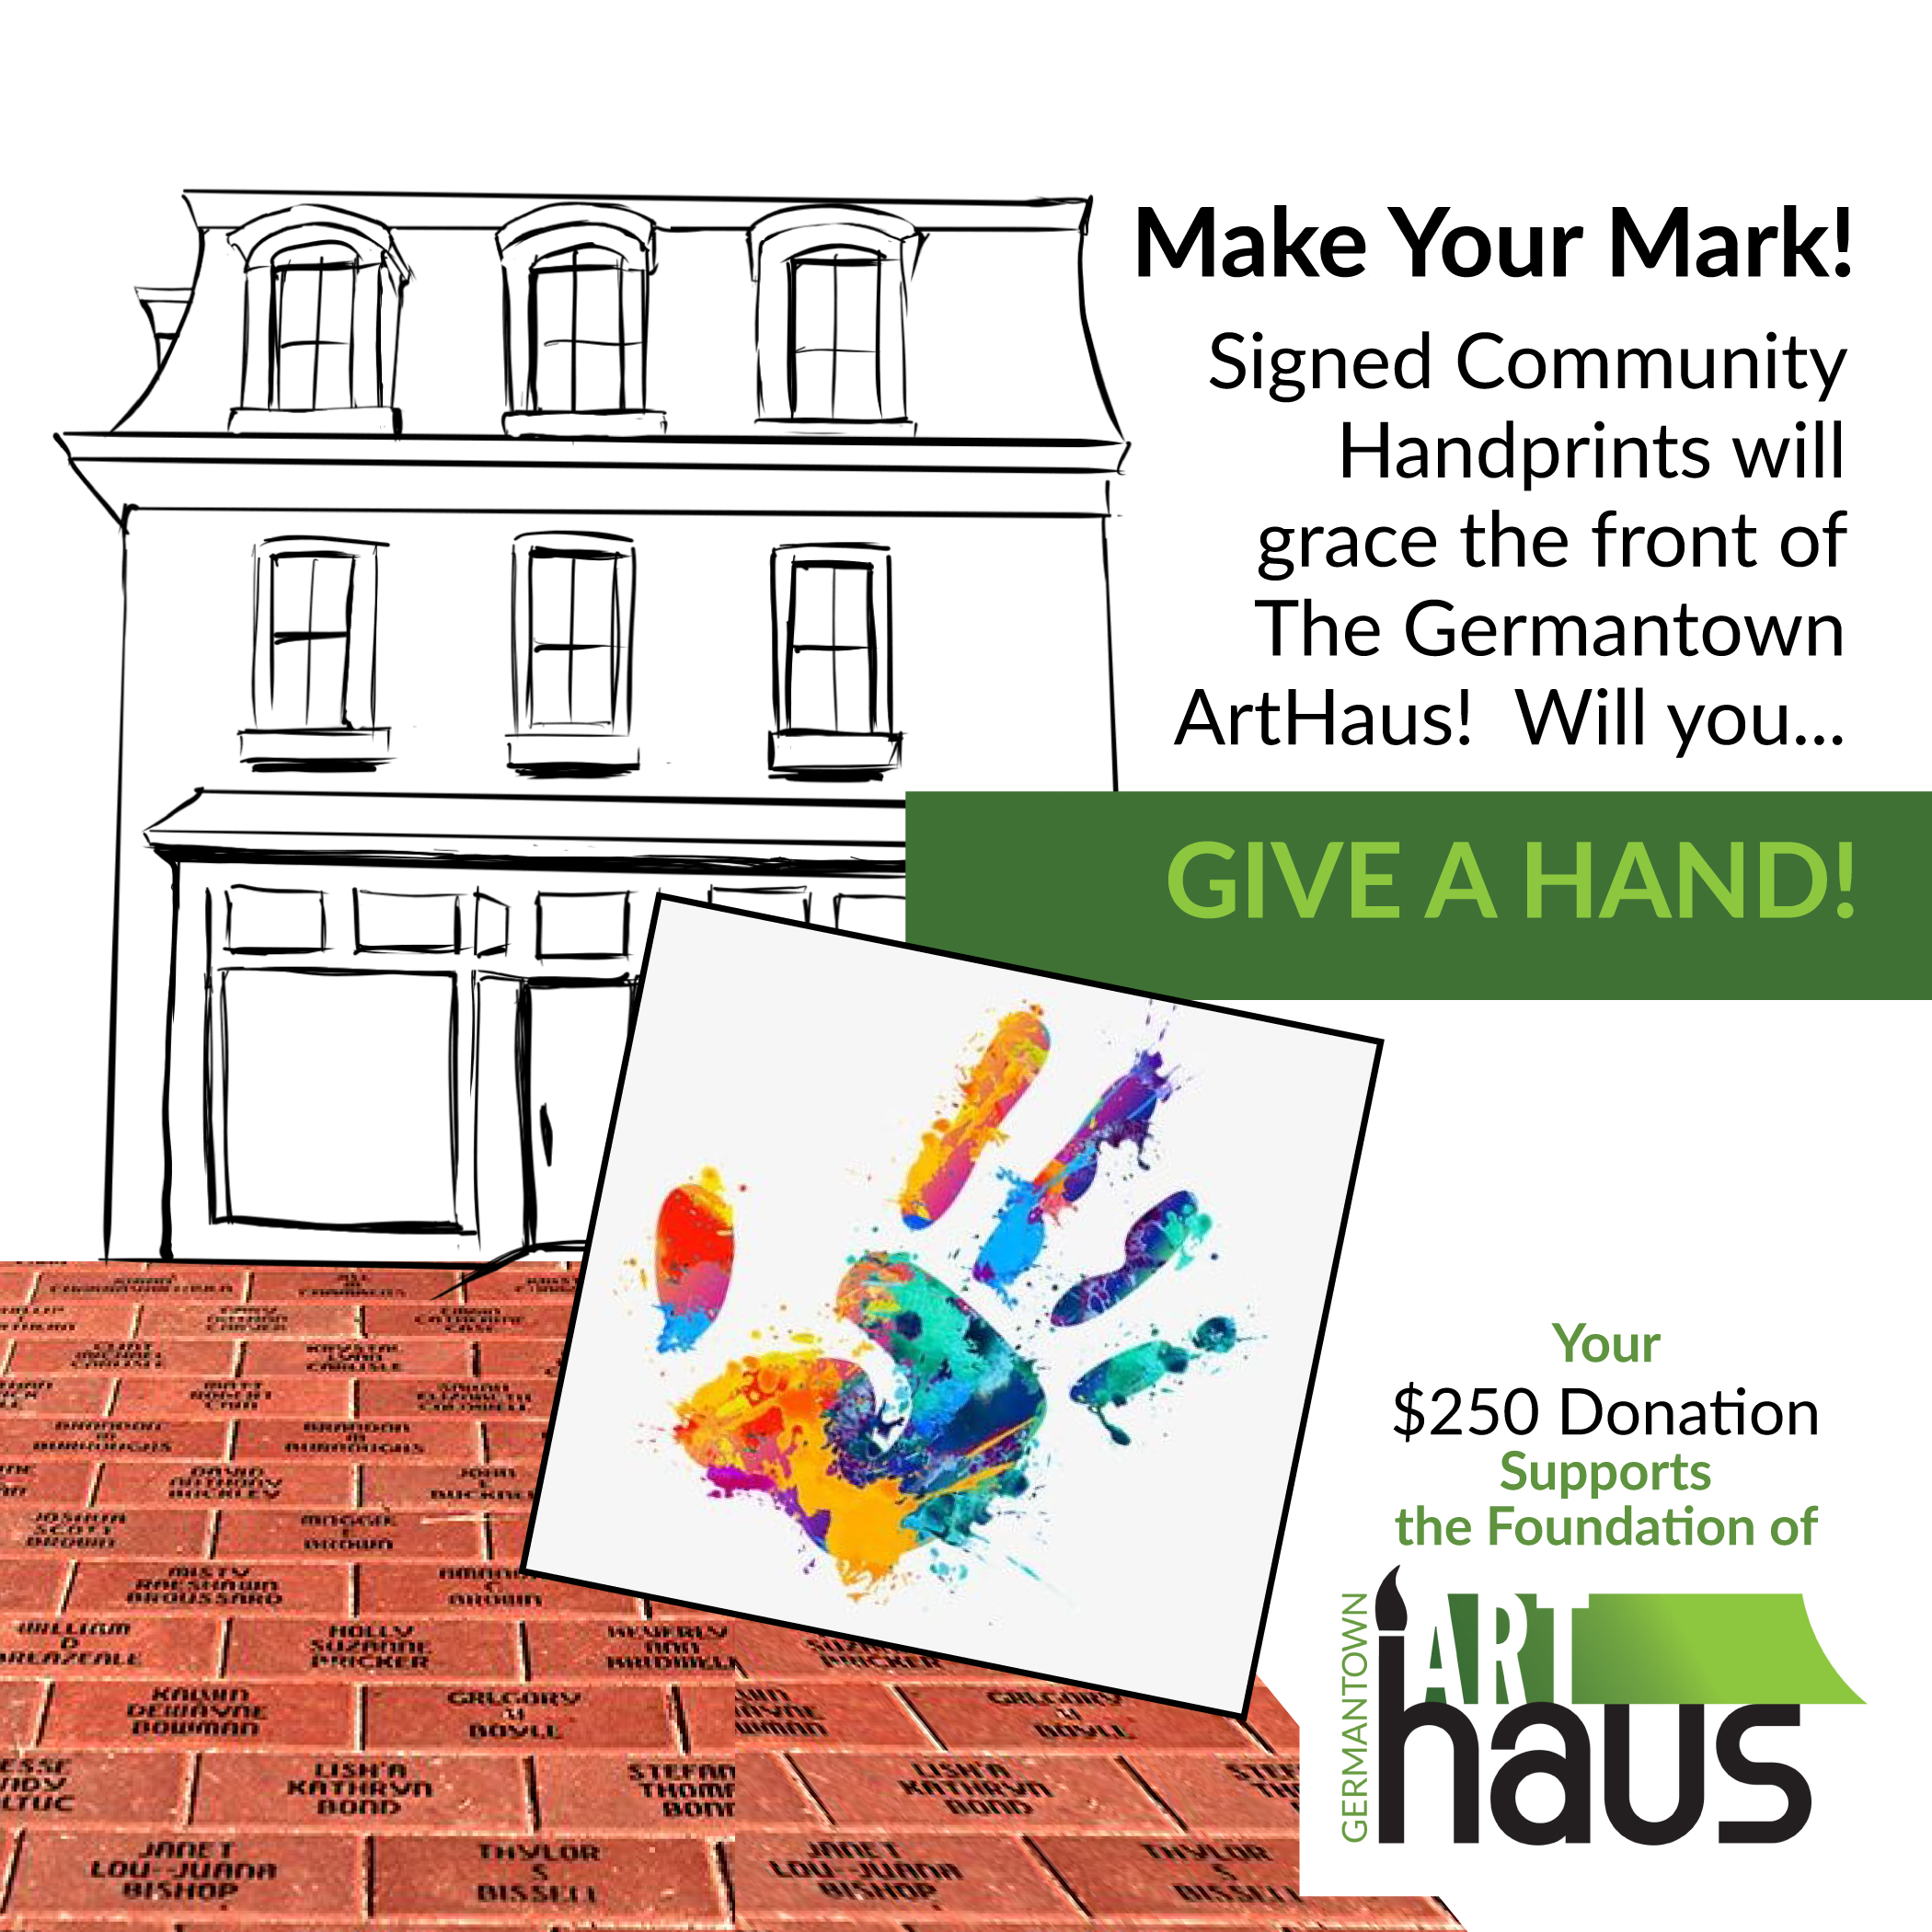 Give a Hand Sponsorship: $250 Donation: put your handprint and signature on the face of the ArtHaus!